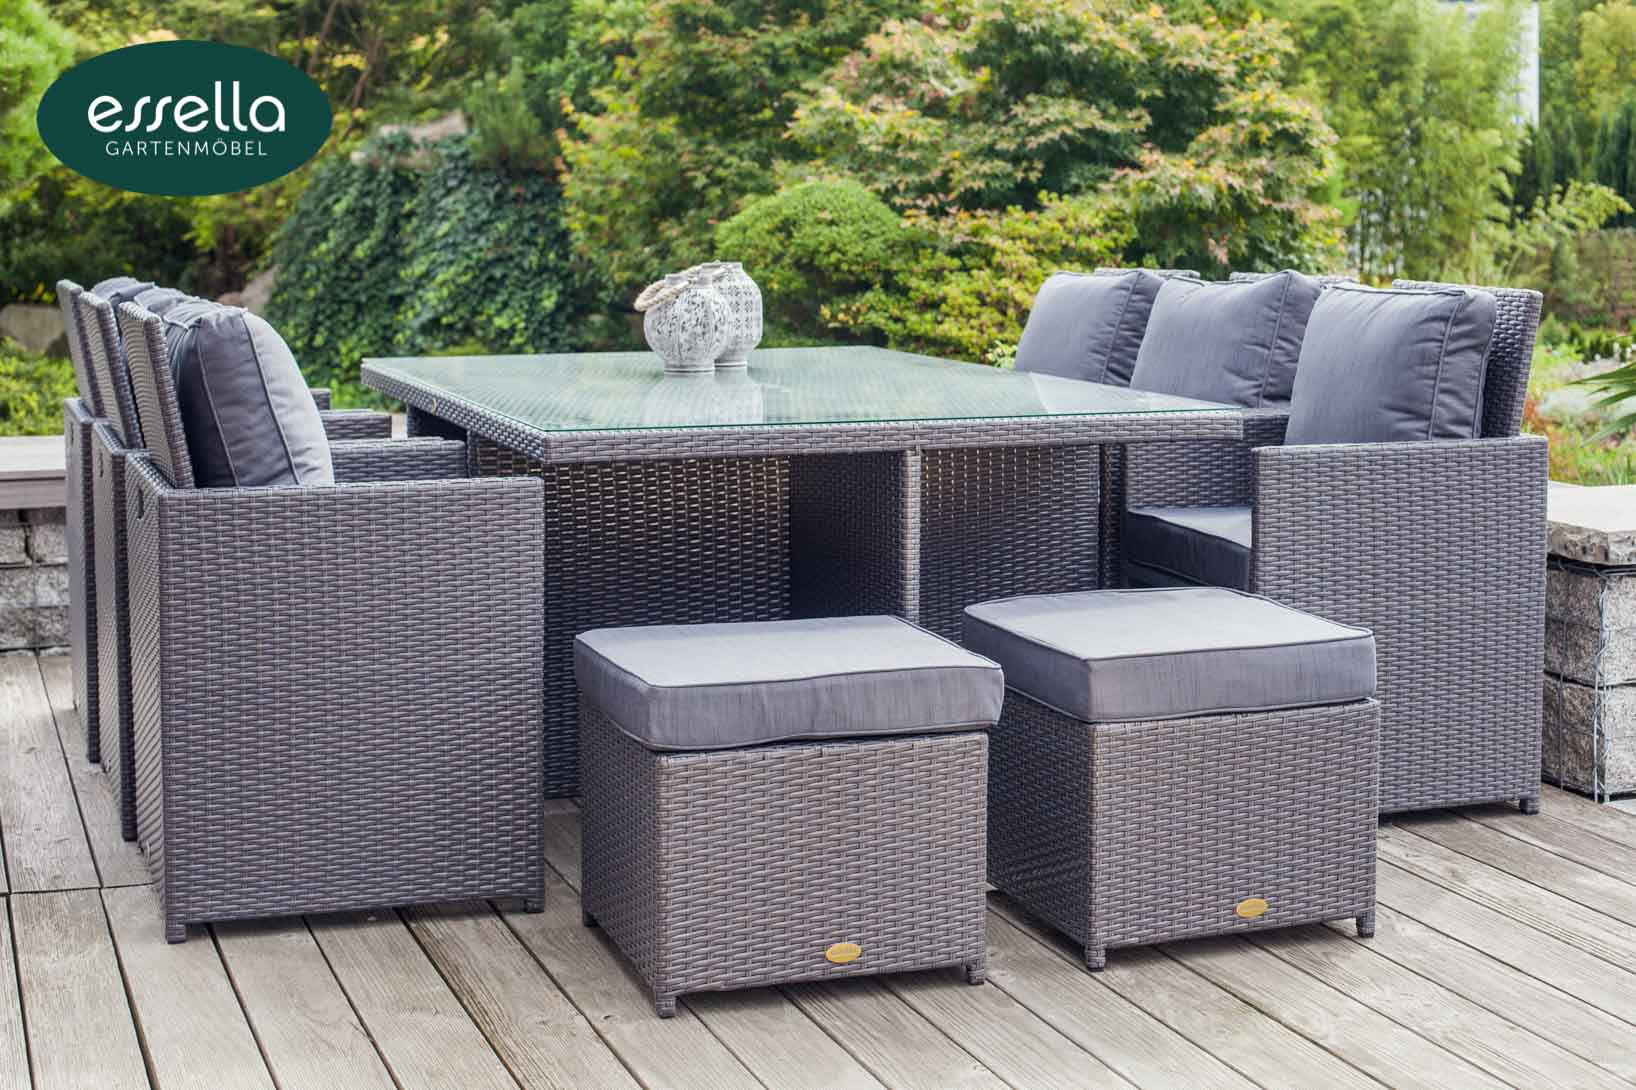 essella polyrattan sitzgruppe vienna 6 personen. Black Bedroom Furniture Sets. Home Design Ideas